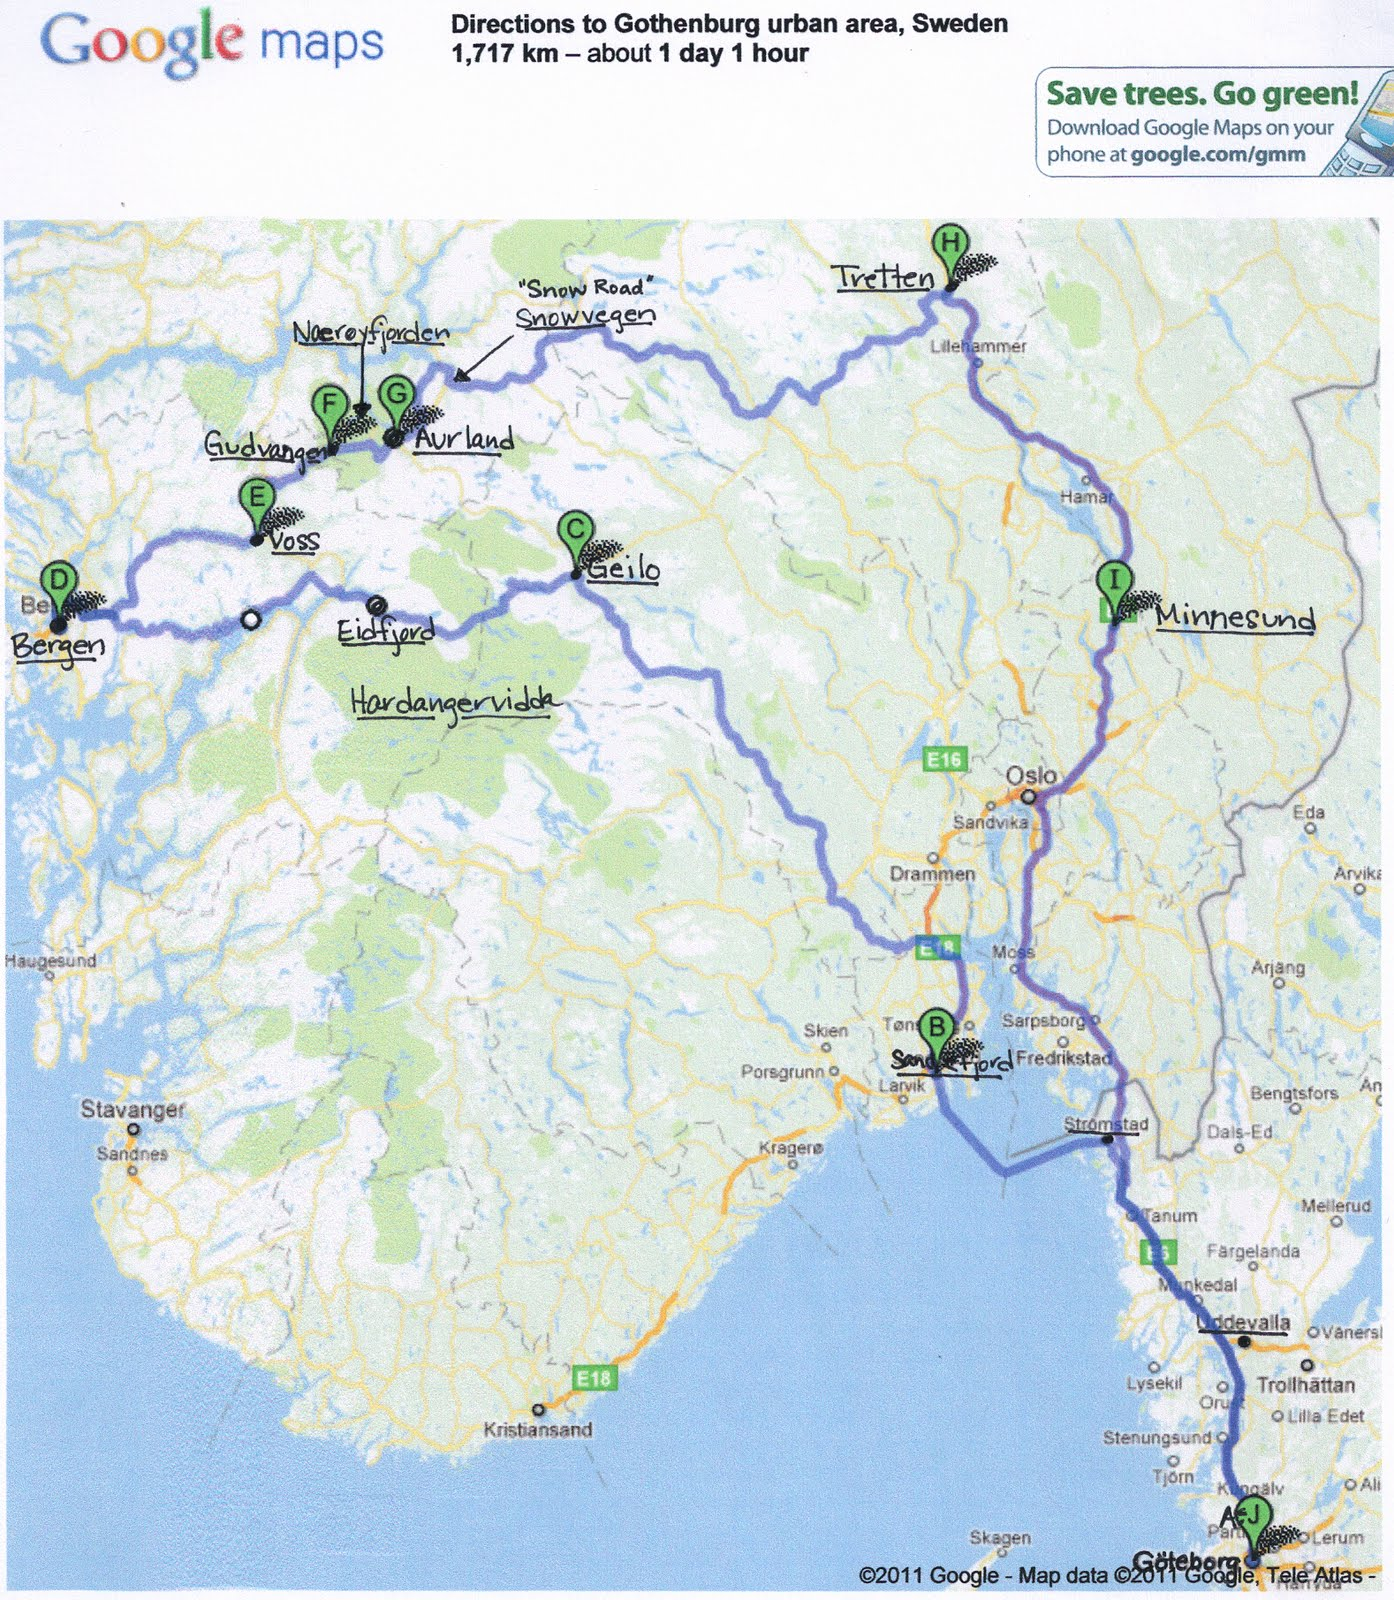 our route starting in gothenburg in the bottom right